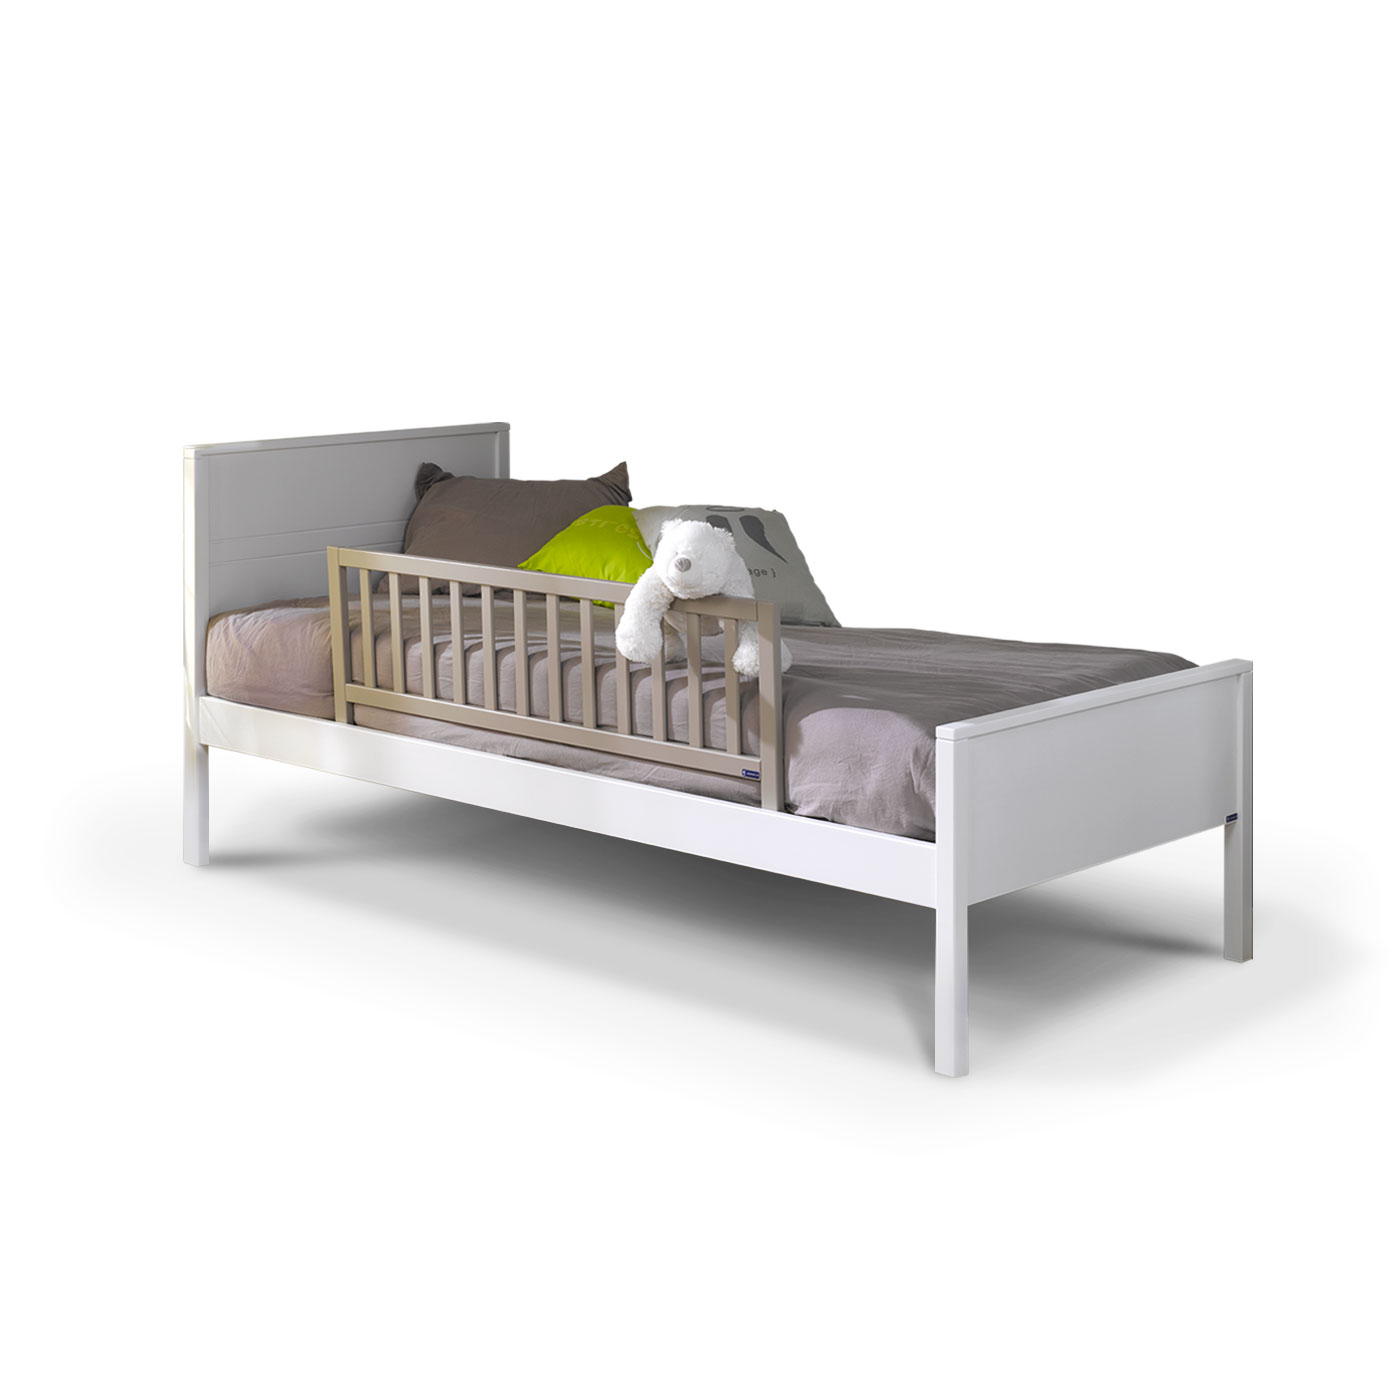 barri re de lit enfant 120 cm lin idkid 39 s. Black Bedroom Furniture Sets. Home Design Ideas